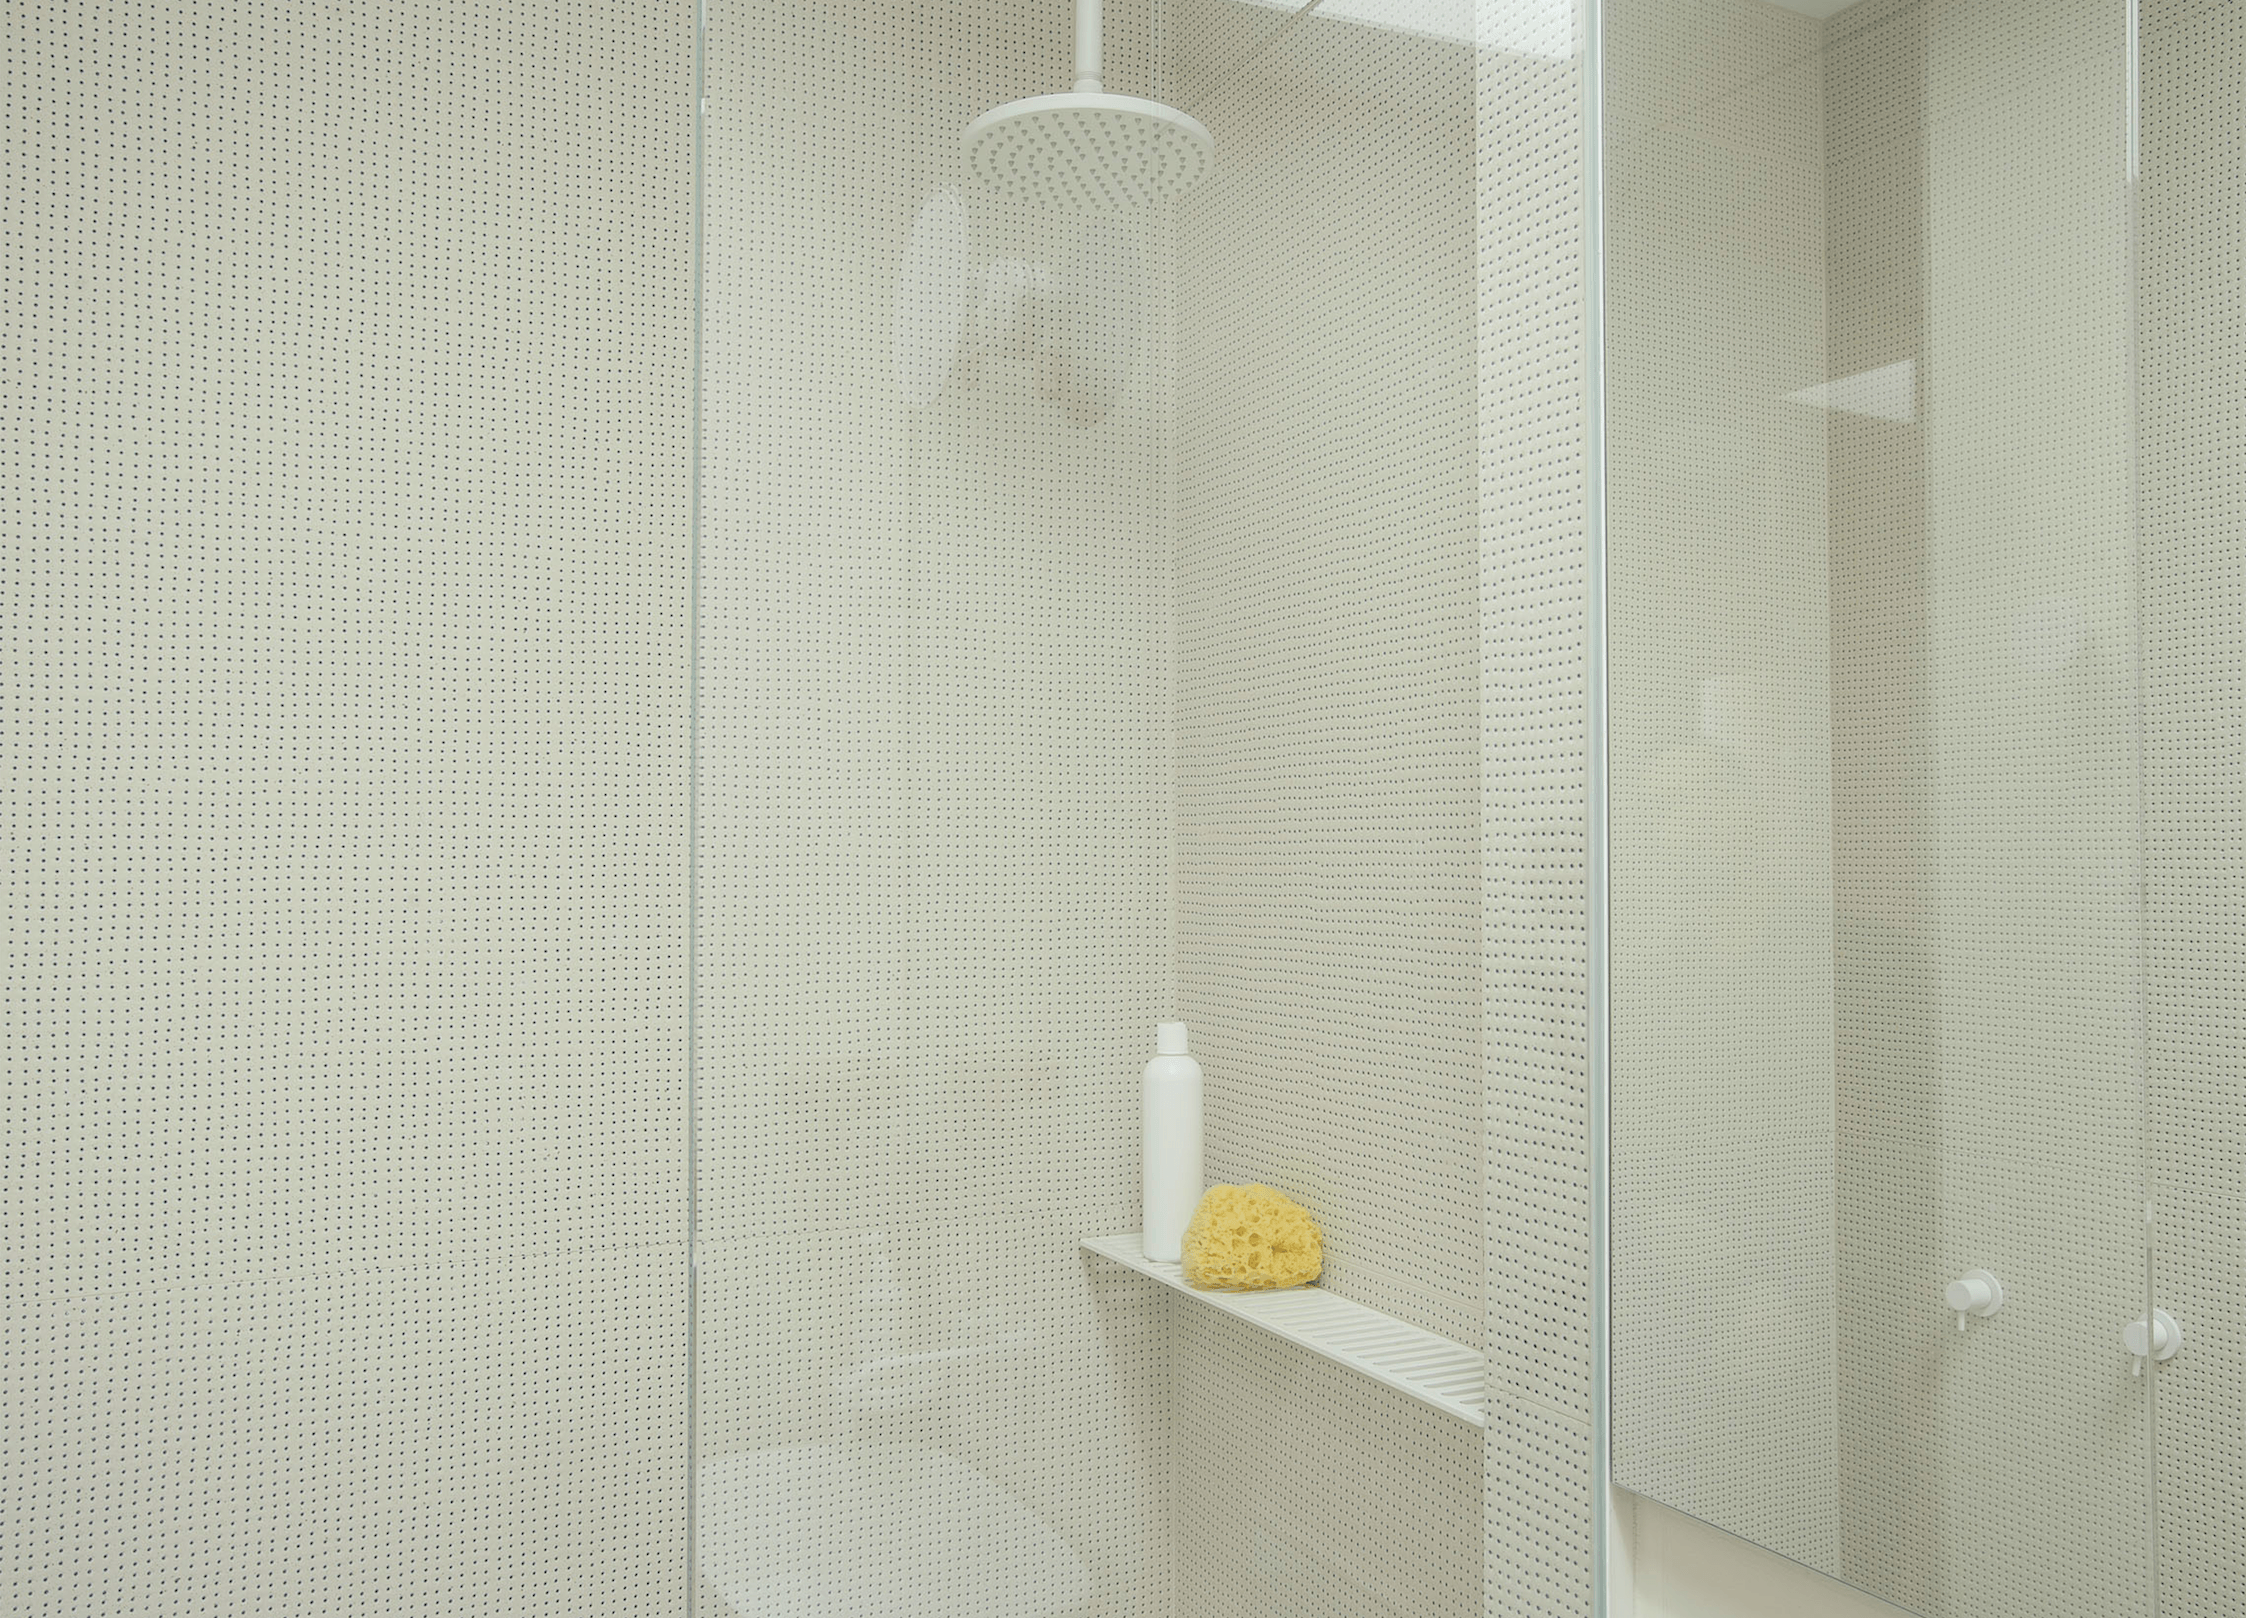 Wall tiles with a pin-size blue dot give the bathroom shower a perforated look. Photograph by Matthew Williams for Remodelista; styling by Alexa Hotz.